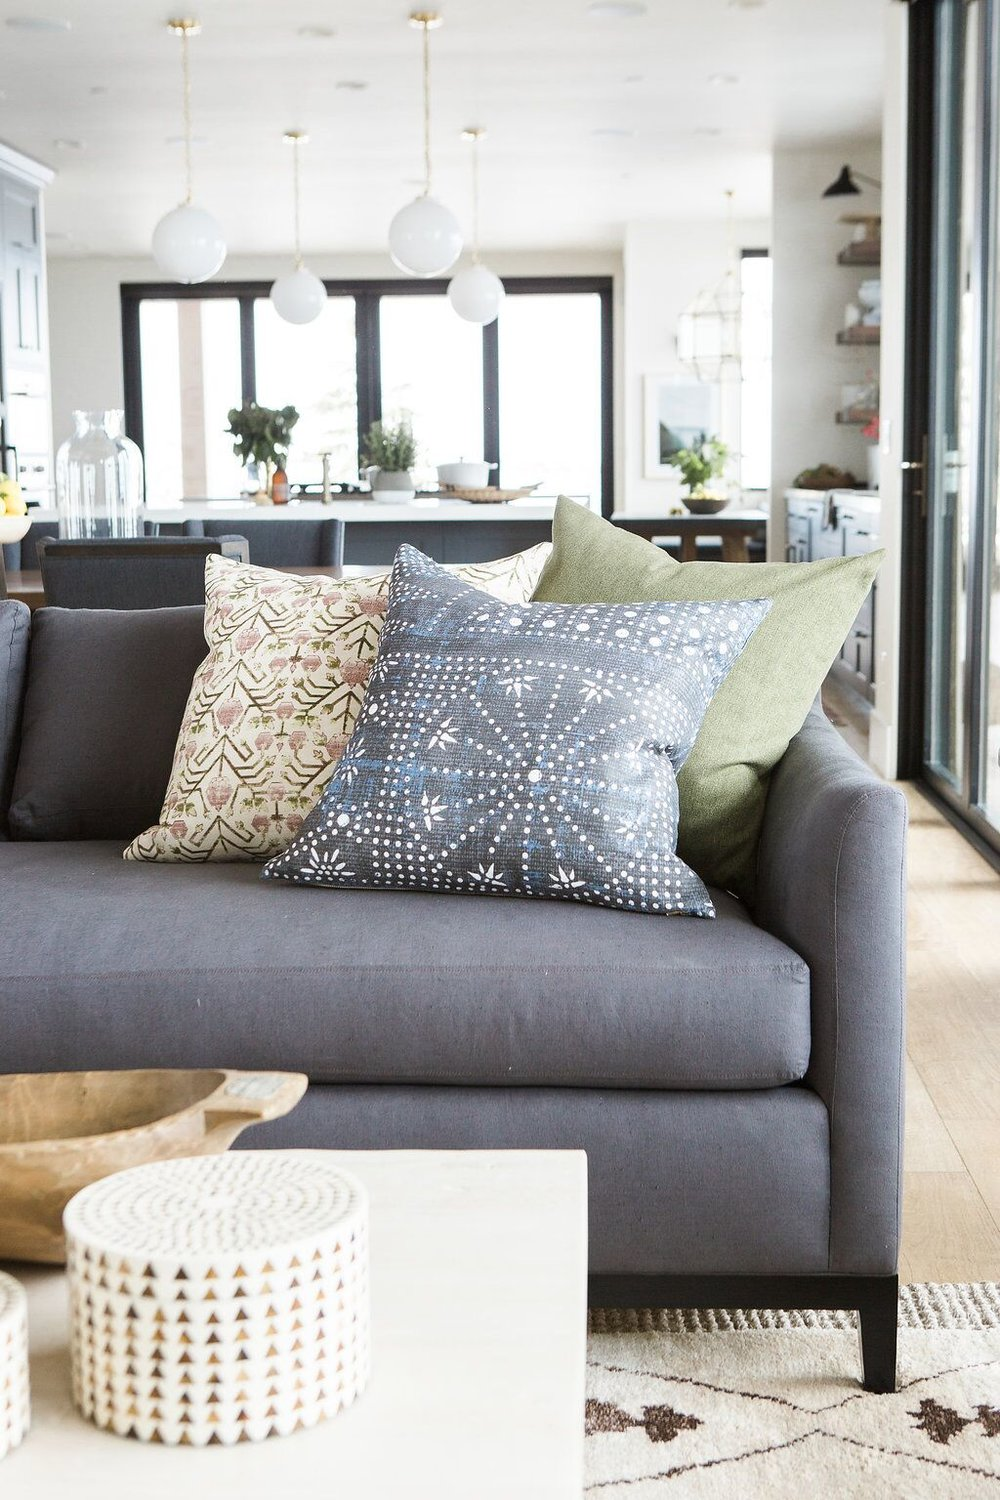 Charmant If You Liked These Tips, Stay Tuned For Pillow Styling On A Sectional And A  Bed!